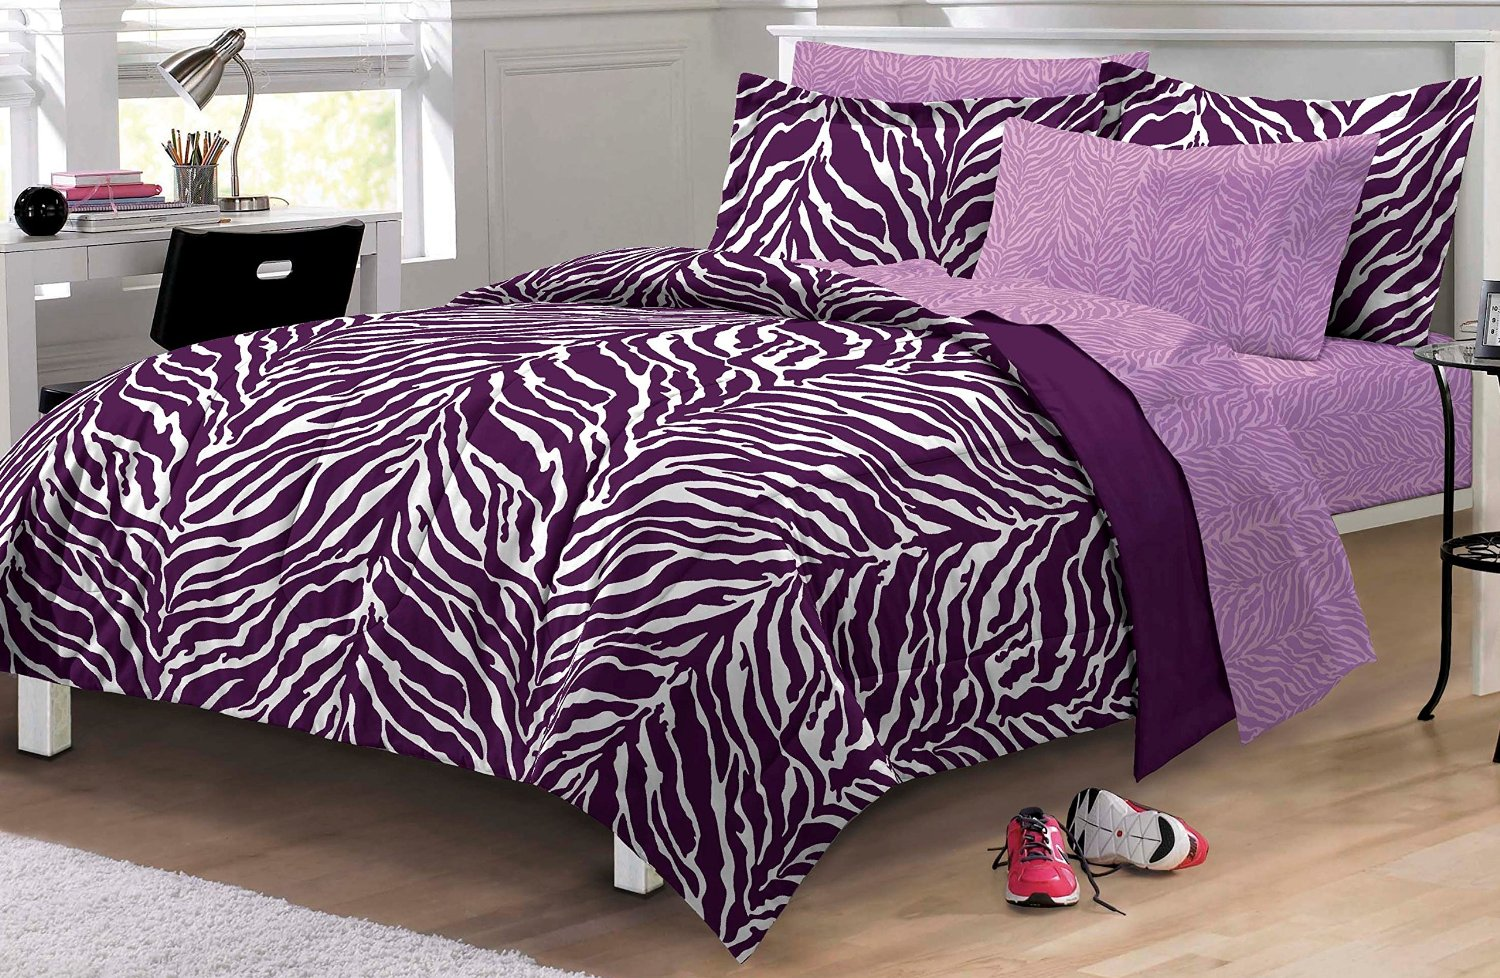 Bed sets for teenage girls zebra - Uber Cheap Funky Purple Zebra Print Comforter Sheet Set For Tween And Teen Girls